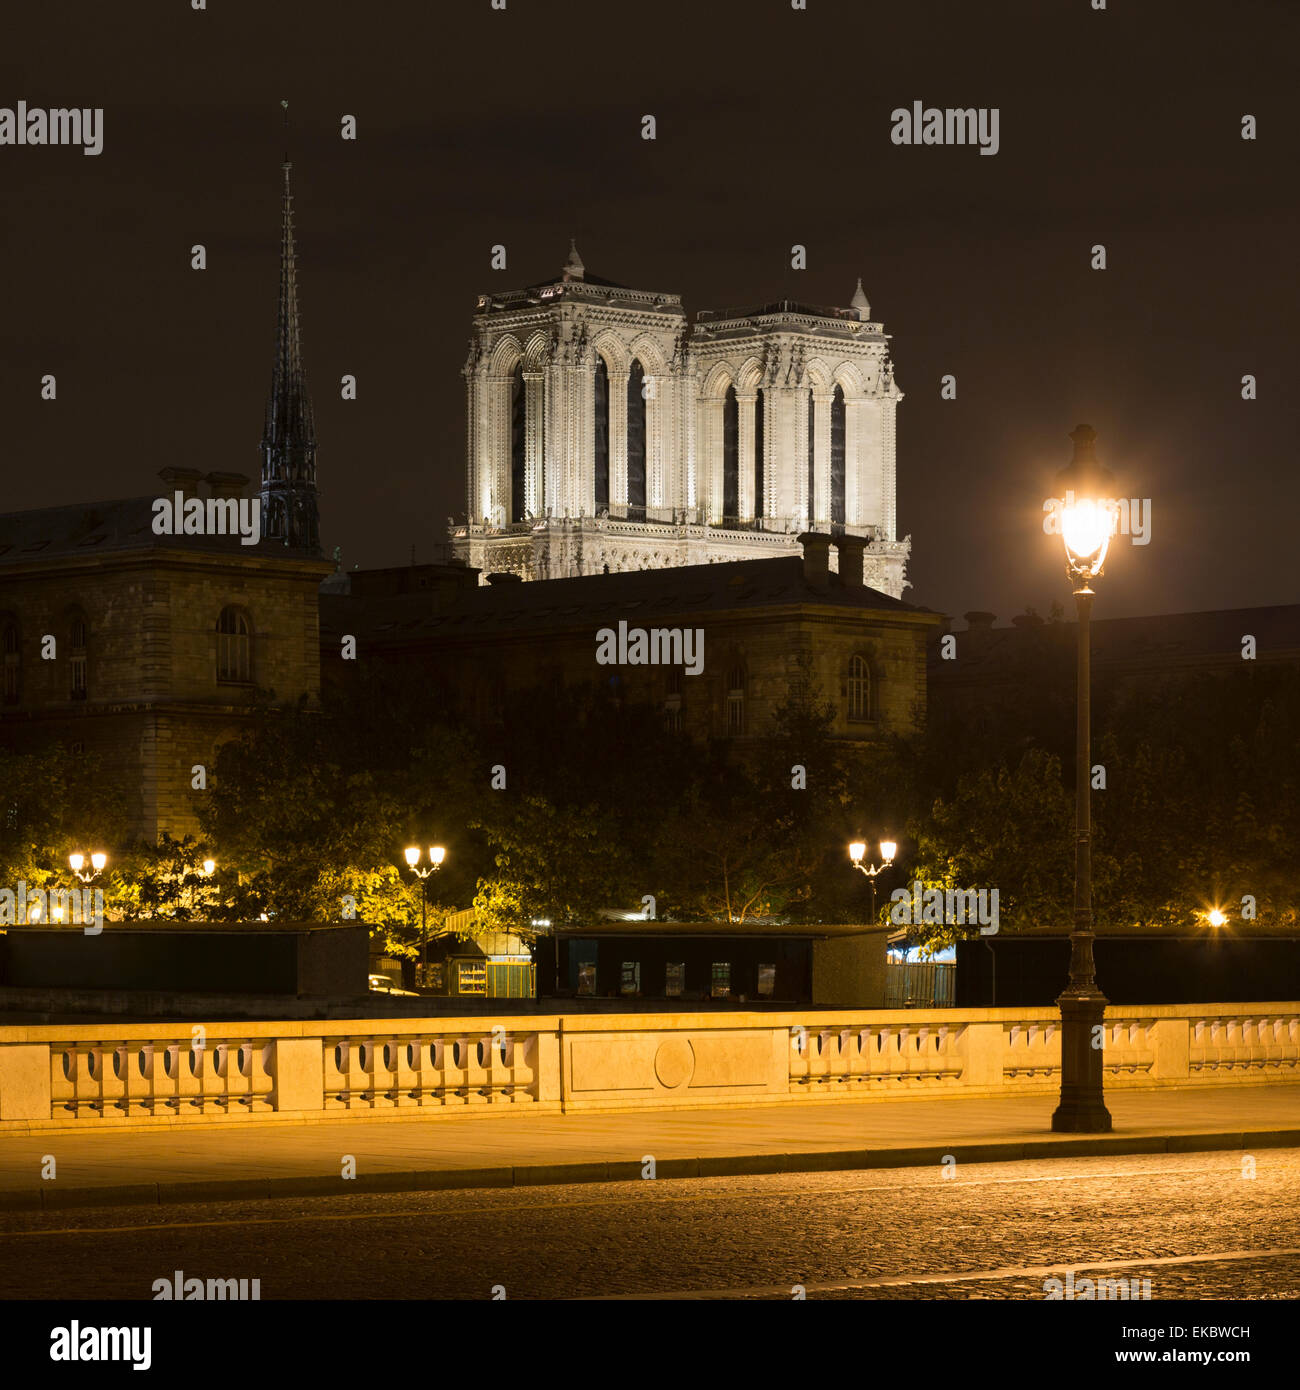 View of Pont au Change and Notre-Dame Cathedral at night, Paris, France - Stock Image